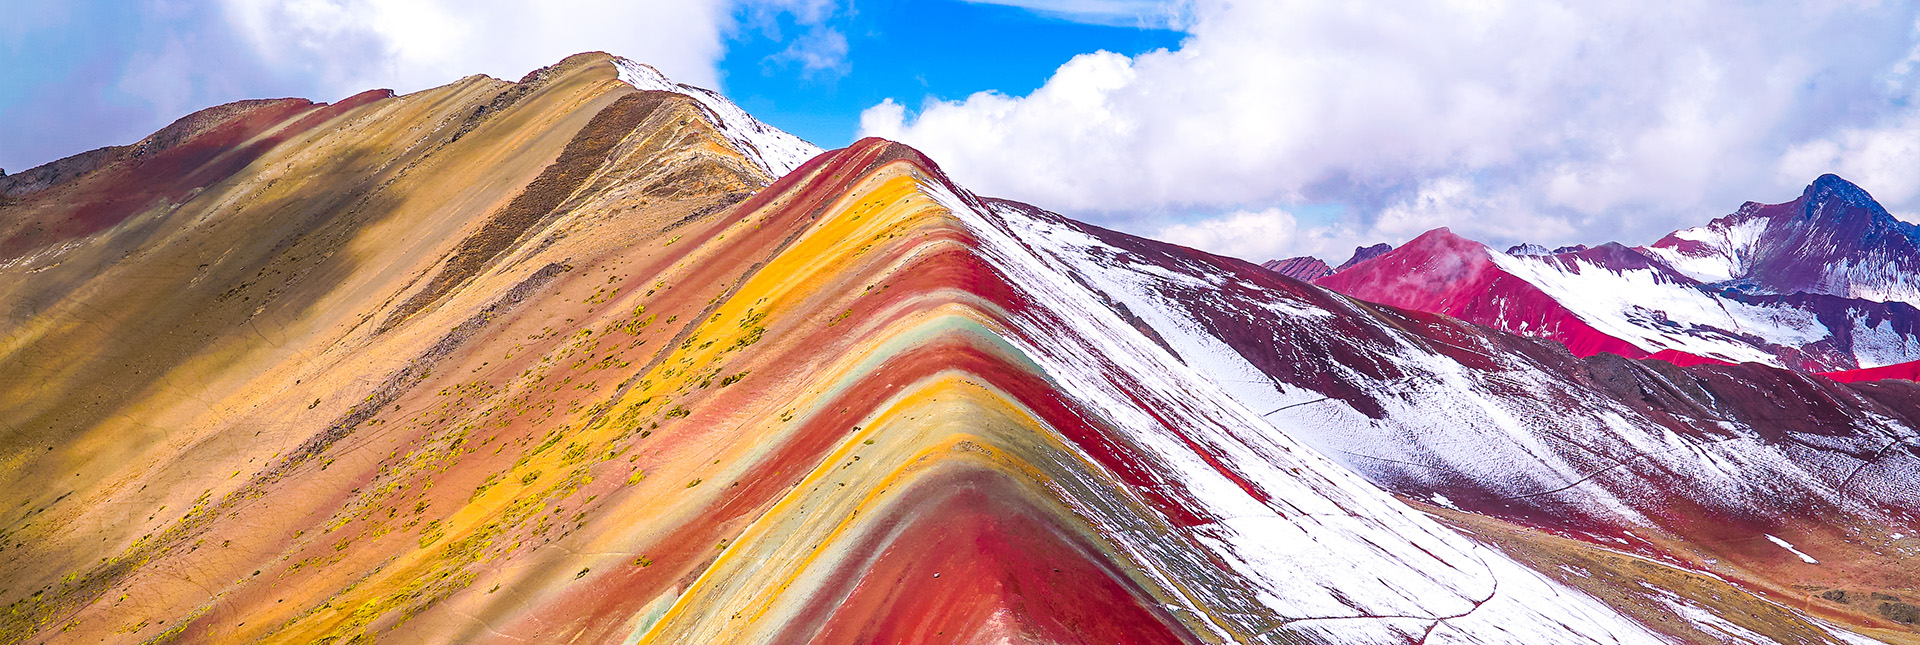 breath taking view of rainbow mountain covered in snow